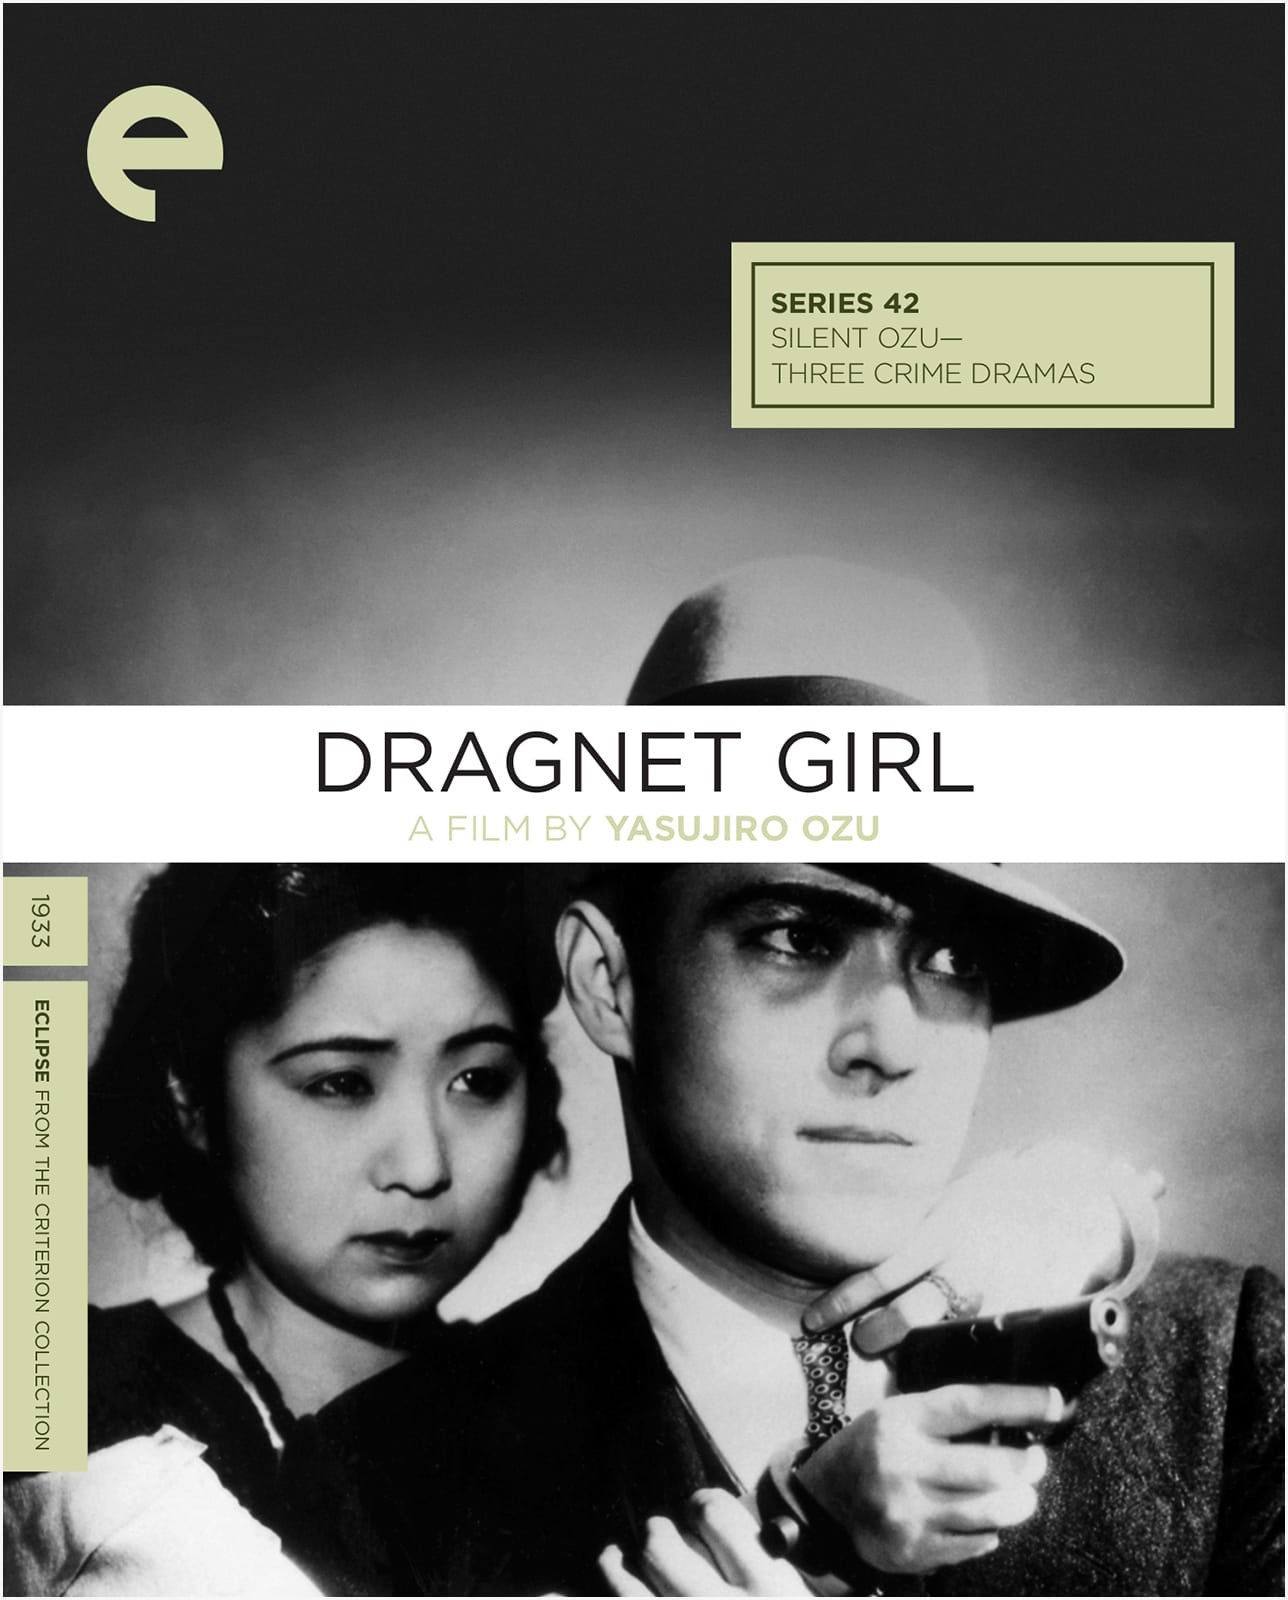 Dragnet Girl